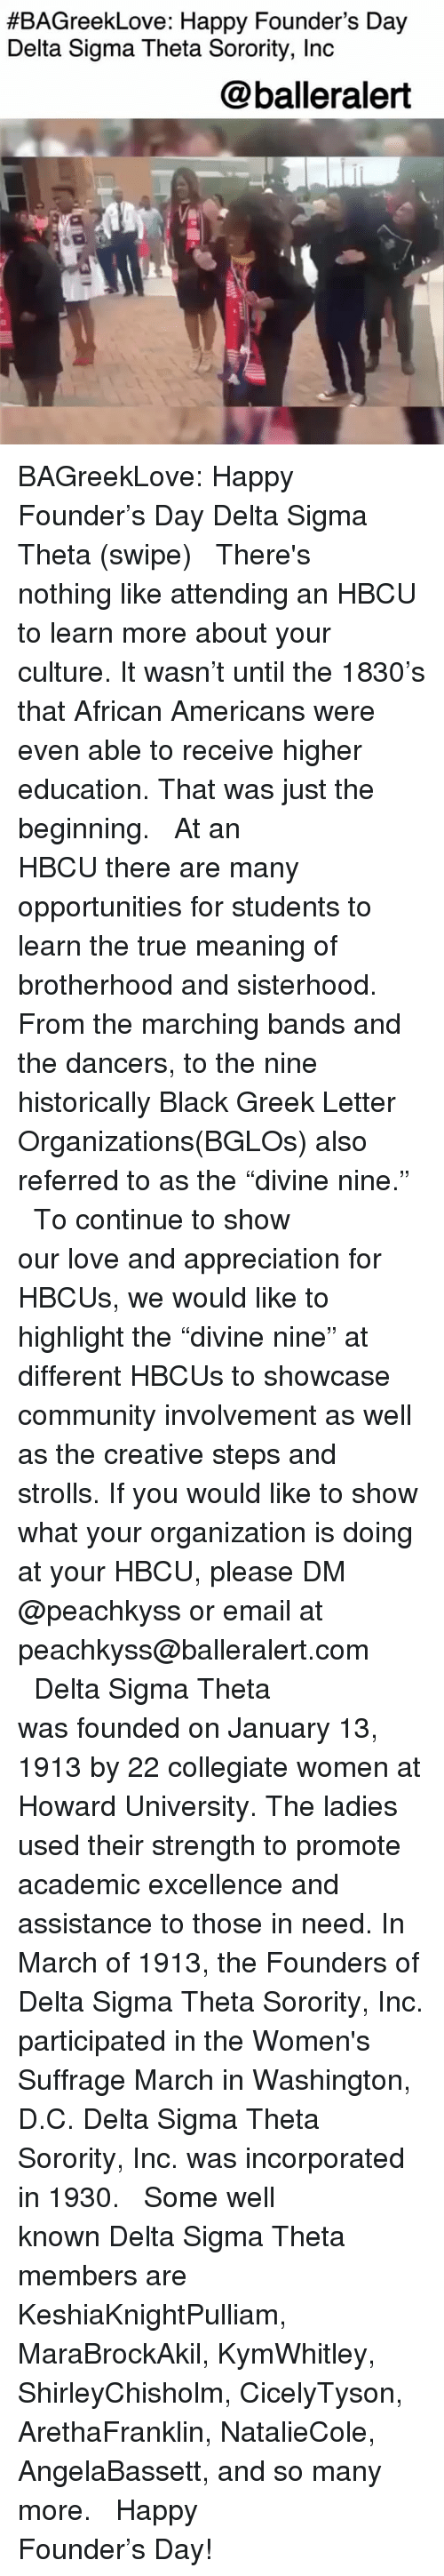 """Community, Love, and Memes:  #BAGreekLove: Happy Founder's Day  Delta Sigma Theta Sorority, Inc  @balleralert BAGreekLove: Happy Founder's Day Delta Sigma Theta (swipe) ⠀⠀⠀⠀⠀⠀⠀ ⠀⠀⠀⠀⠀⠀⠀ There's nothing like attending an HBCU to learn more about your culture. It wasn't until the 1830's that African Americans were even able to receive higher education. That was just the beginning. ⠀⠀⠀⠀⠀⠀⠀ ⠀⠀⠀⠀⠀⠀⠀ At an HBCU there are many opportunities for students to learn the true meaning of brotherhood and sisterhood. From the marching bands and the dancers, to the nine historically Black Greek Letter Organizations(BGLOs) also referred to as the """"divine nine."""" ⠀⠀⠀⠀⠀⠀⠀ ⠀⠀⠀⠀⠀⠀⠀ To continue to show our love and appreciation for HBCUs, we would like to highlight the """"divine nine"""" at different HBCUs to showcase community involvement as well as the creative steps and strolls. If you would like to show what your organization is doing at your HBCU, please DM @peachkyss or email at peachkyss@balleralert.com ⠀⠀⠀⠀⠀⠀⠀ ⠀⠀⠀⠀⠀⠀⠀ Delta Sigma Theta was founded on January 13, 1913 by 22 collegiate women at Howard University. The ladies used their strength to promote academic excellence and assistance to those in need. In March of 1913, the Founders of Delta Sigma Theta Sorority, Inc. participated in the Women's Suffrage March in Washington, D.C. Delta Sigma Theta Sorority, Inc. was incorporated in 1930. ⠀⠀⠀⠀⠀⠀⠀ ⠀⠀⠀⠀⠀⠀⠀ Some well known Delta Sigma Theta members are KeshiaKnightPulliam, MaraBrockAkil, KymWhitley, ShirleyChisholm, CicelyTyson, ArethaFranklin, NatalieCole, AngelaBassett, and so many more. ⠀⠀⠀⠀⠀⠀⠀ ⠀⠀⠀⠀⠀⠀⠀ Happy Founder's Day!"""